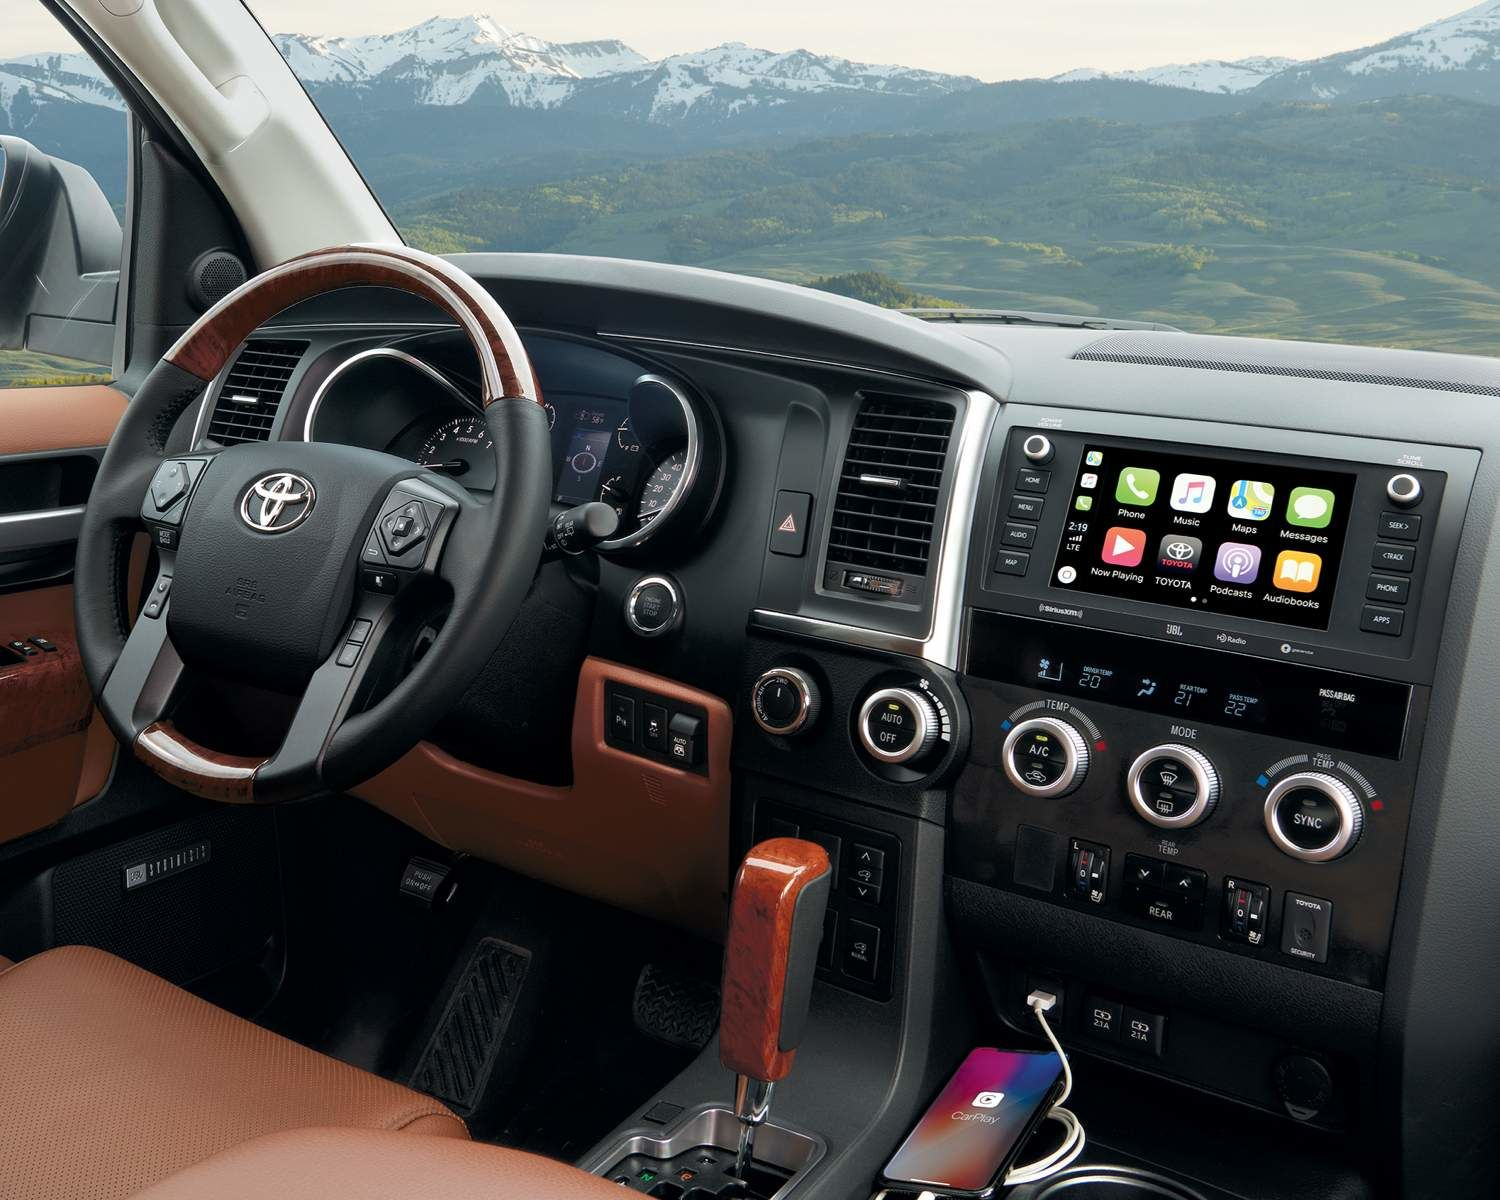 Sequoia Display Audio System with Apple CarPlayTM